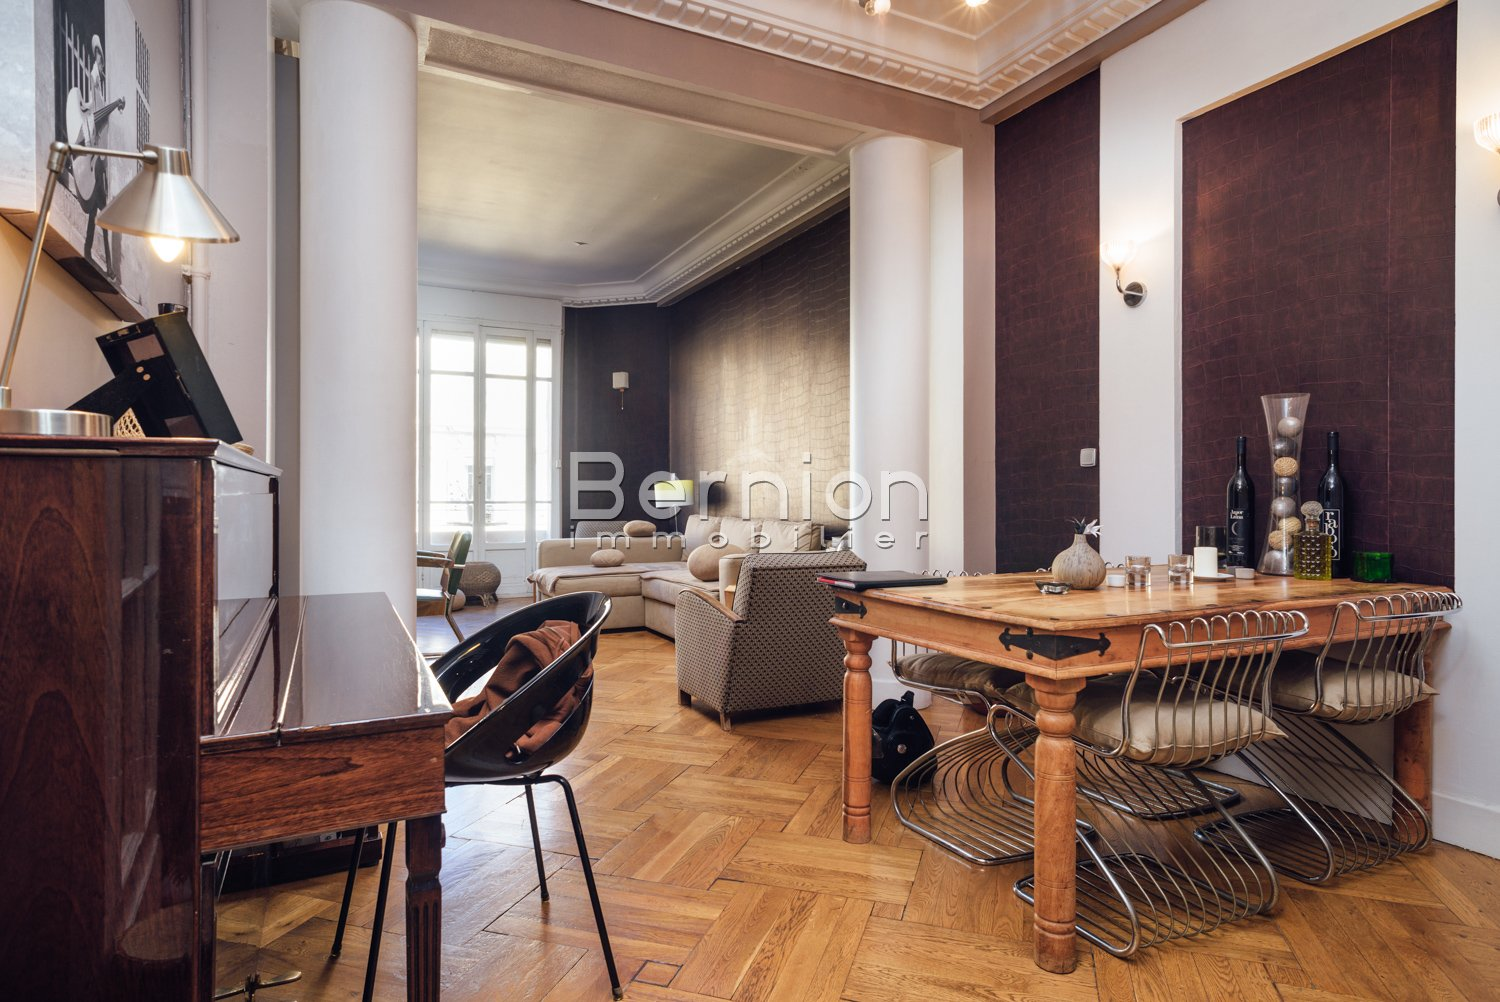 For Sale, Nice City Center Beautiful 72 sqm Apartment with terrace in Art Deco Building / photo 7